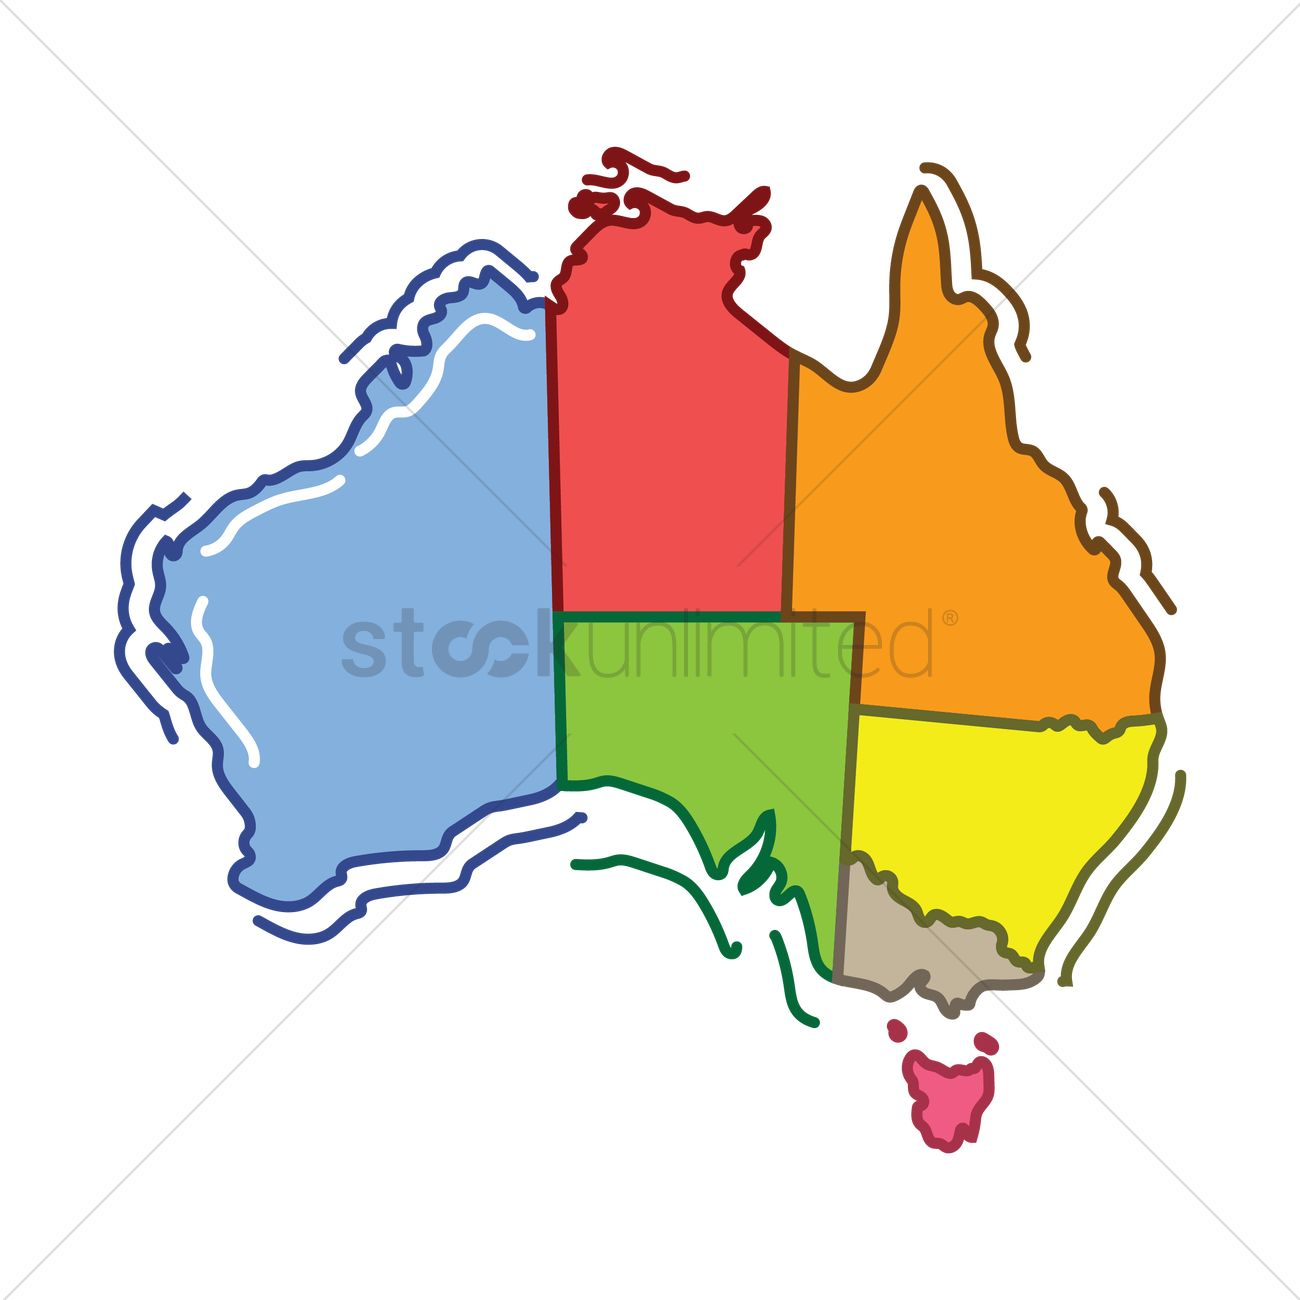 Australia map with division vector image 1949554 stockunlimited australia map with division vector graphic gumiabroncs Image collections